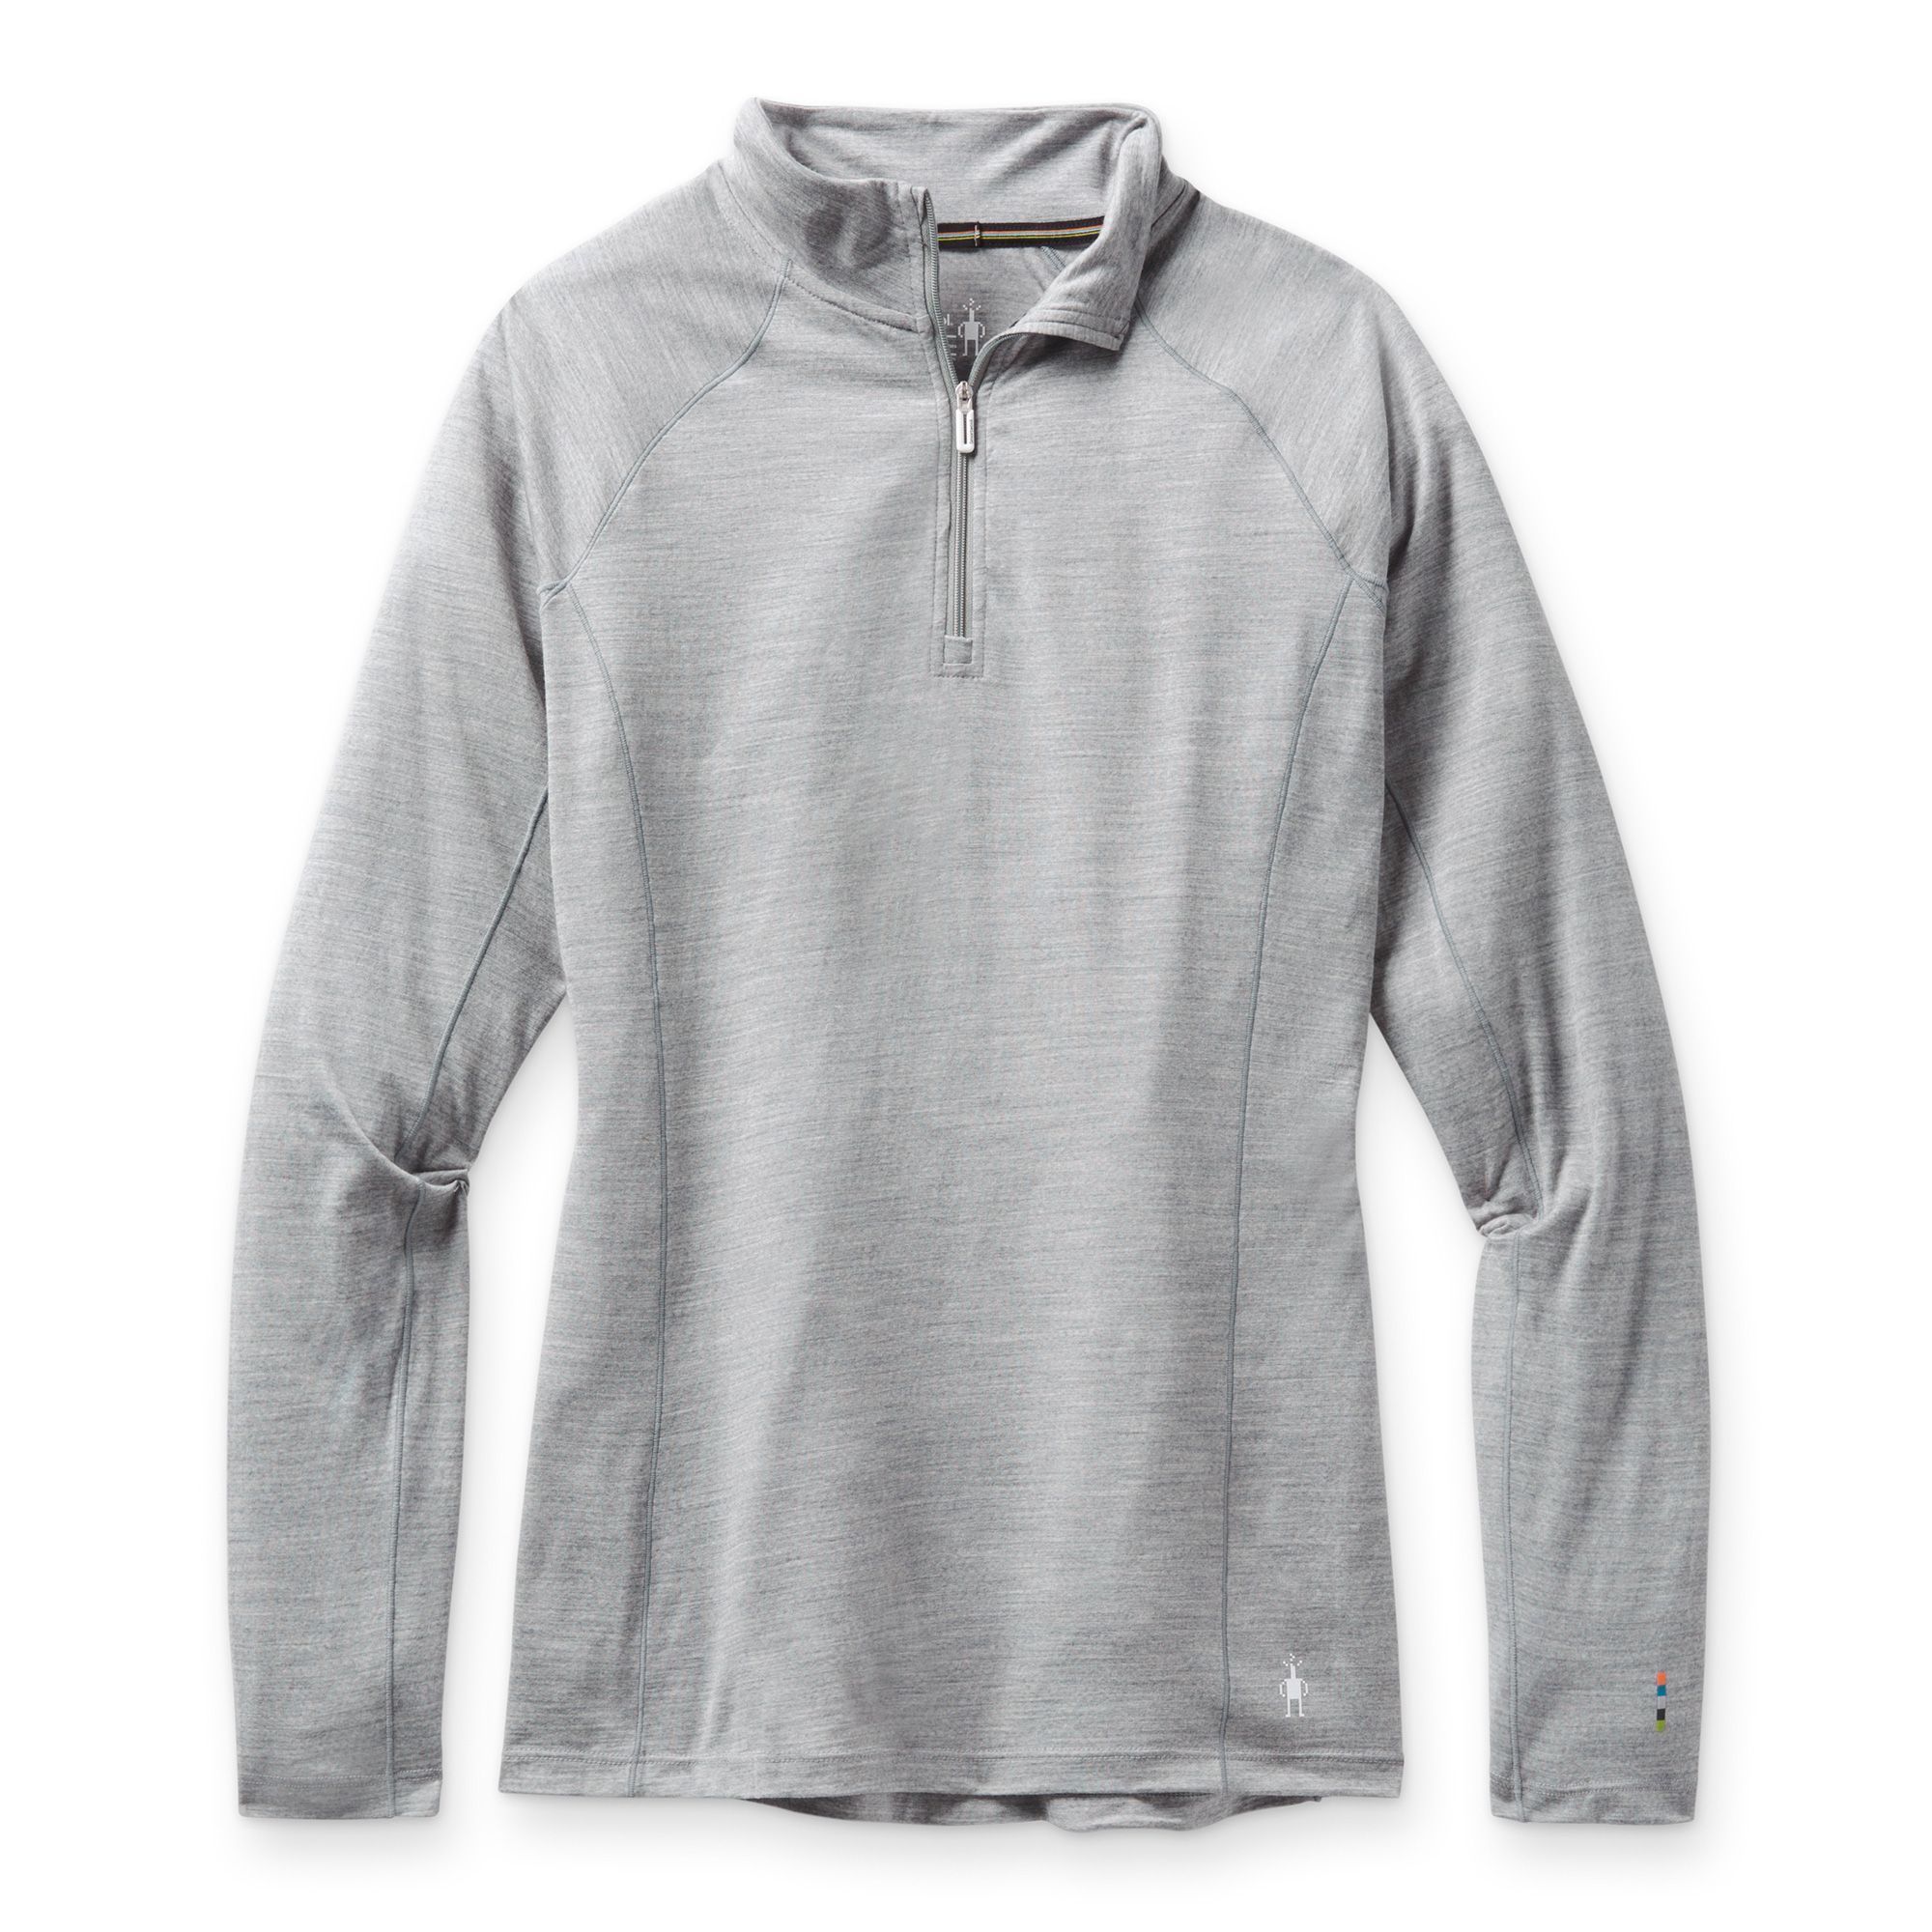 Women's Merino 150 Baselayer 1/4 Zip